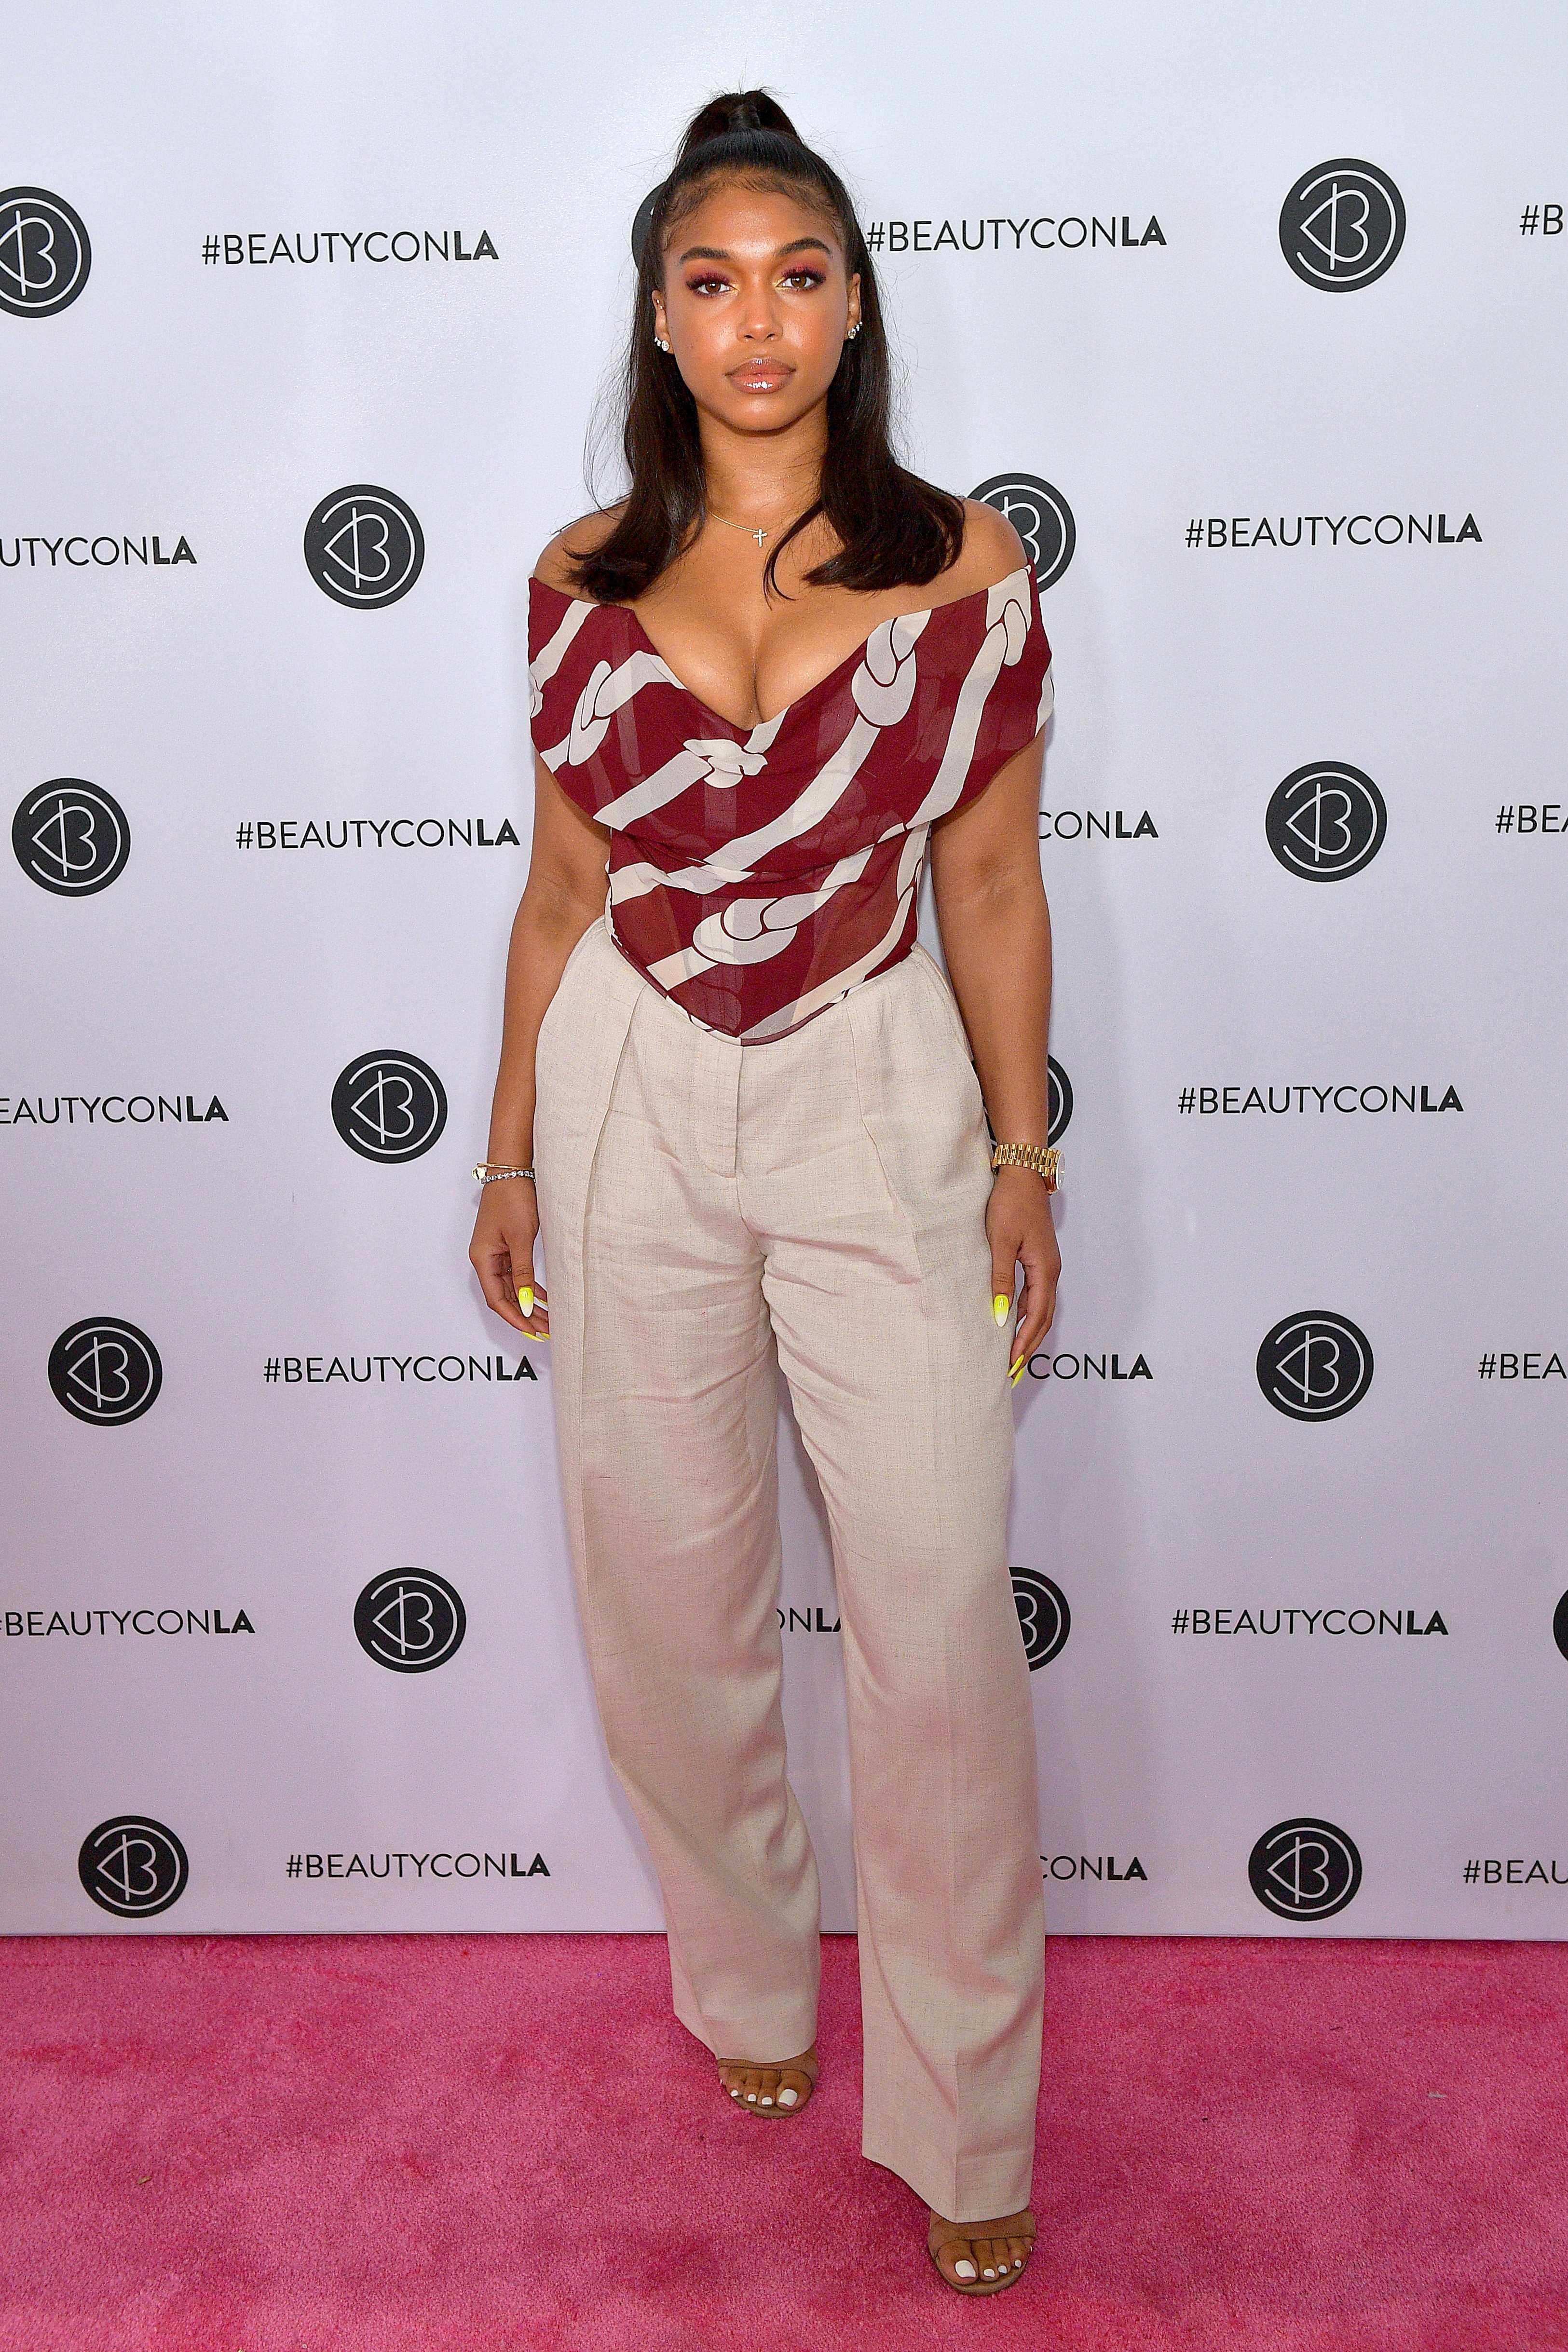 Lori Harvey attends Beautycon Los Angeles 2019 Pink Carpet at Los Angeles Convention Center on August 11, 2019 Photo: Getty Images